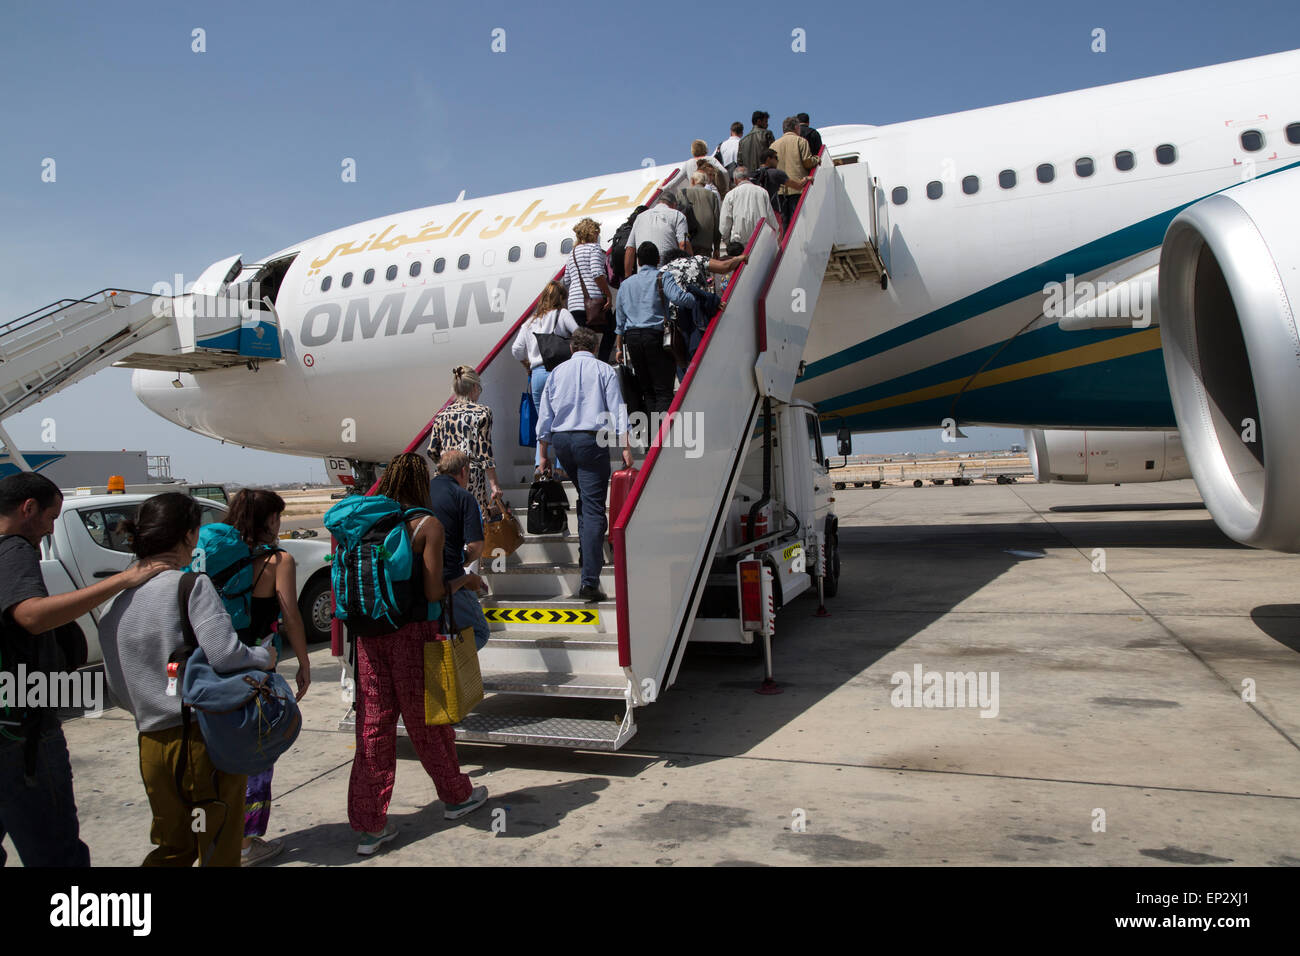 Passengers boarding Oman Airways plane, Seeb International Airport, Muscat, Oman - Stock Image